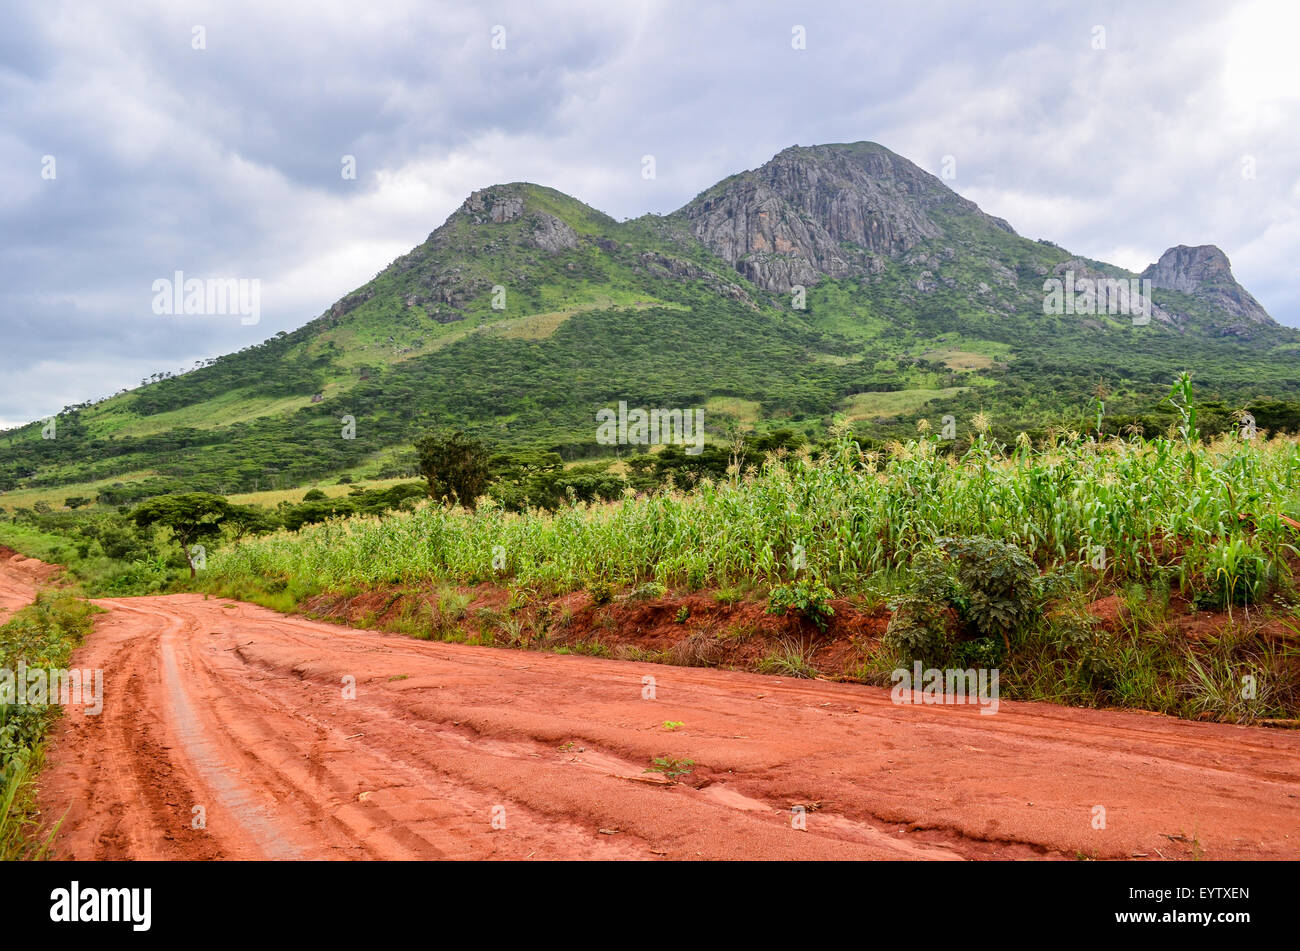 Mountains and dirt red earth road in Angola - Stock Image